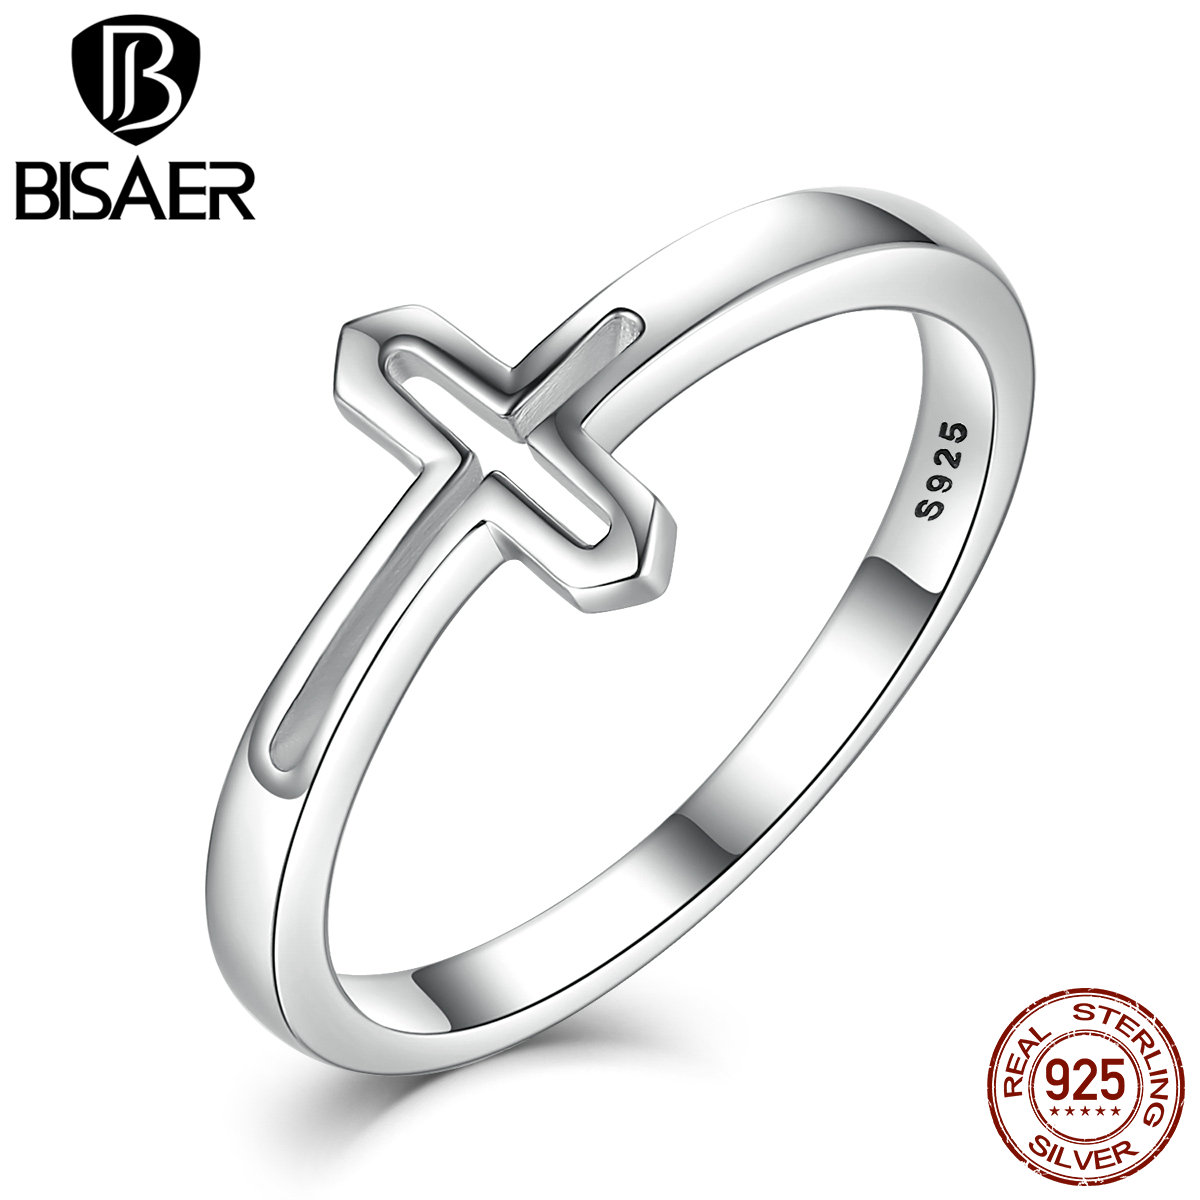 New collection real 100 925 sterling silver symbol of faith cross new collection real 100 925 sterling silver symbol of faith cross rings for women jewelry ecr033 in engagement rings from jewelry accessories on biocorpaavc Images